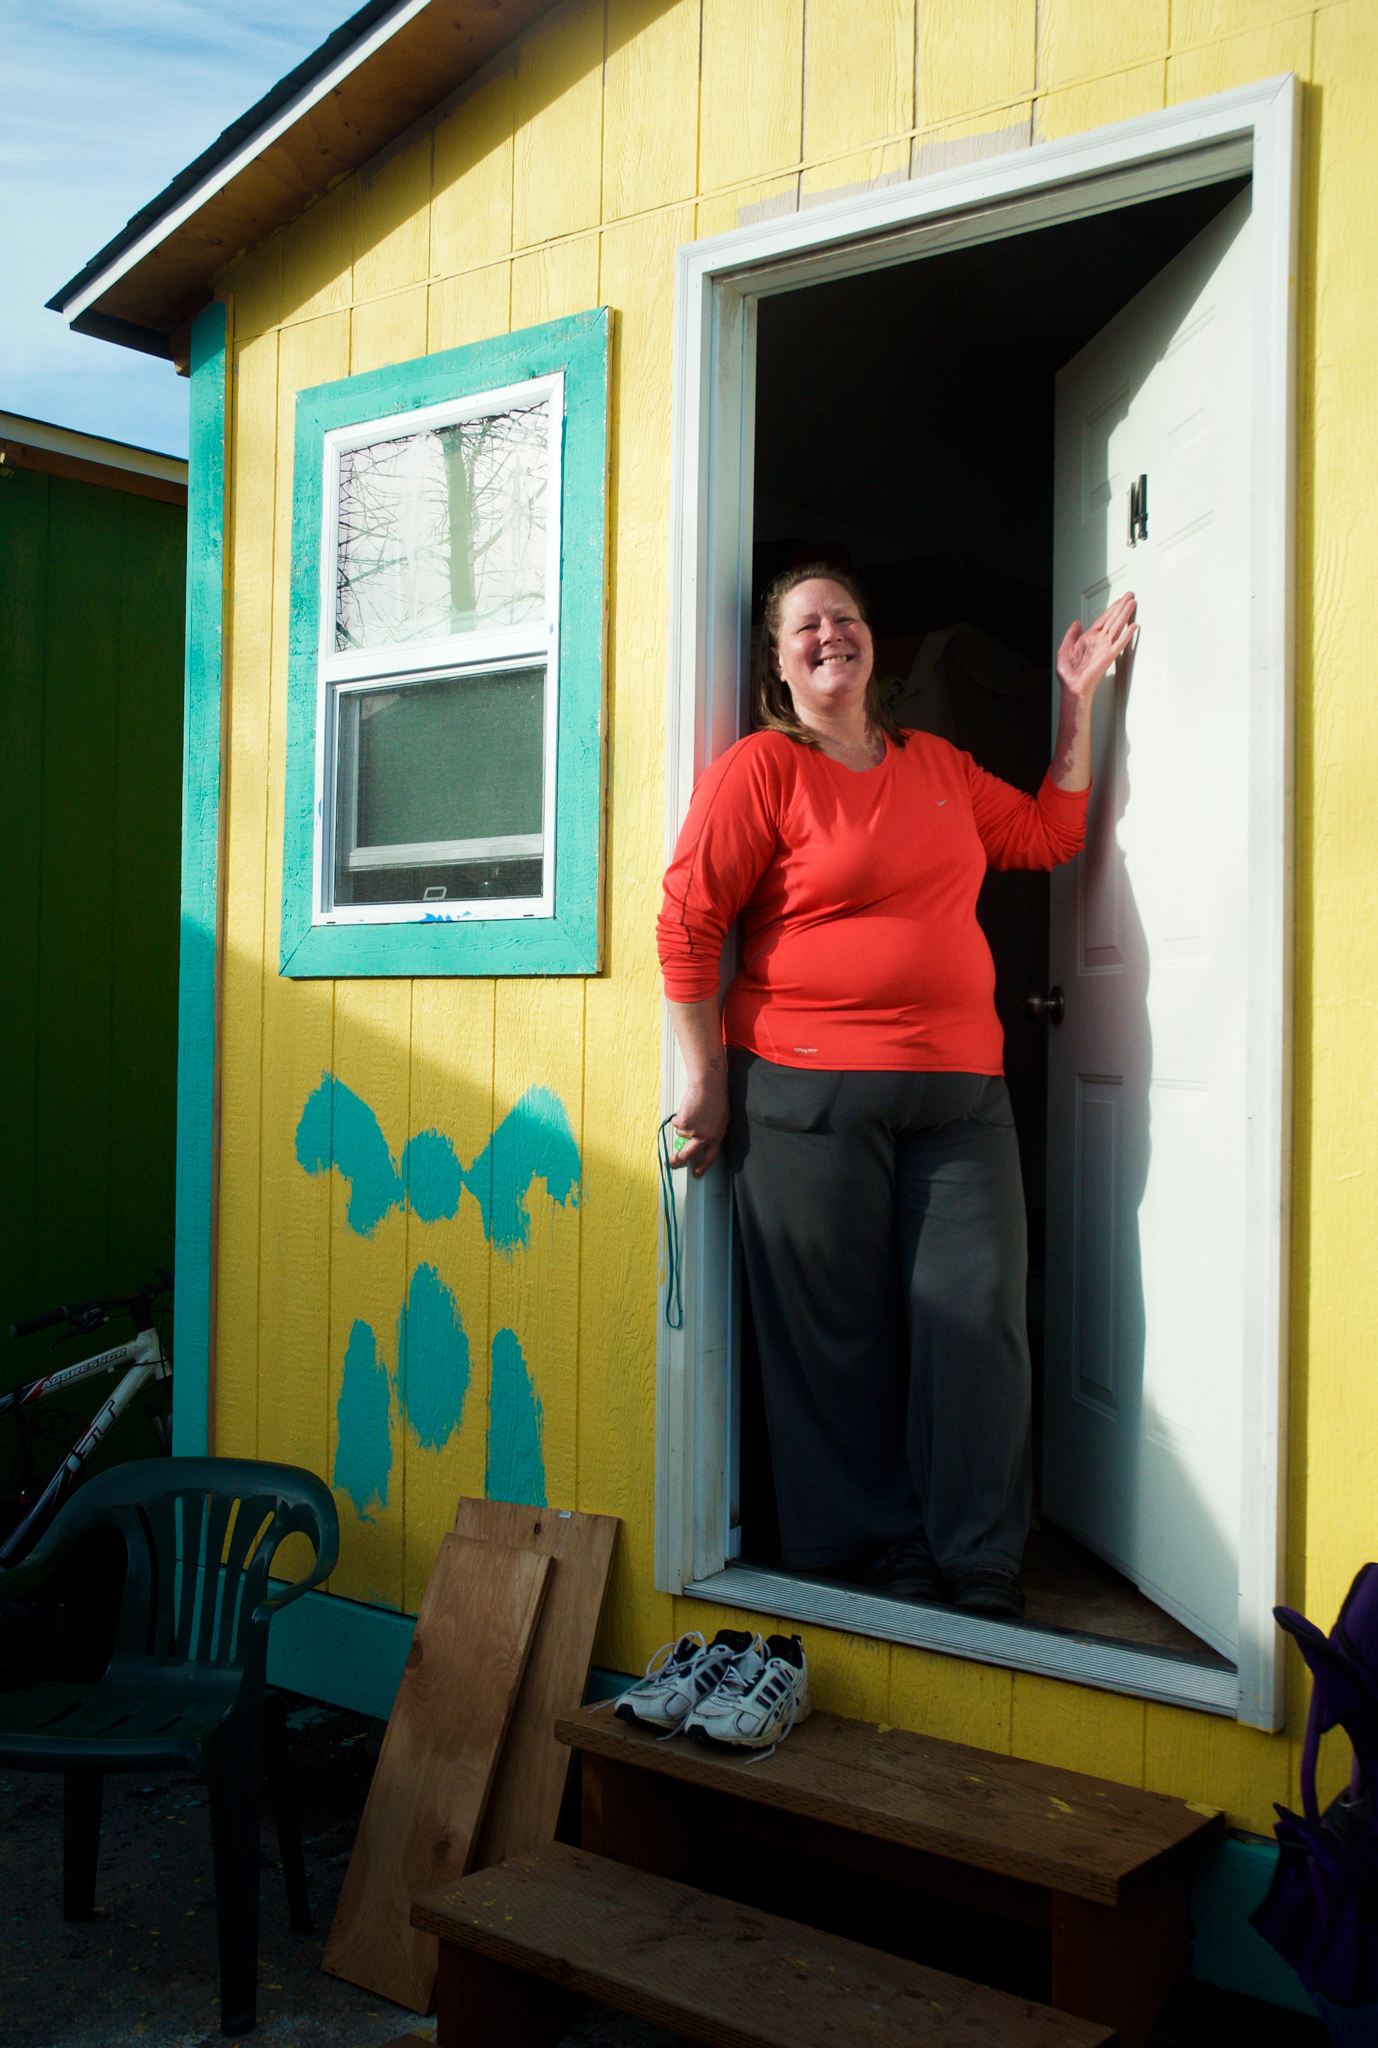 Mitze Buffer stands in the doorway of her tiny home at Seattle's Othello Village. Having spent six years sleeping in a tent before coming to Othello, Buffer says she was so unused to a private dwelling that during her first week she locked her keys into her tiny home three separate times.